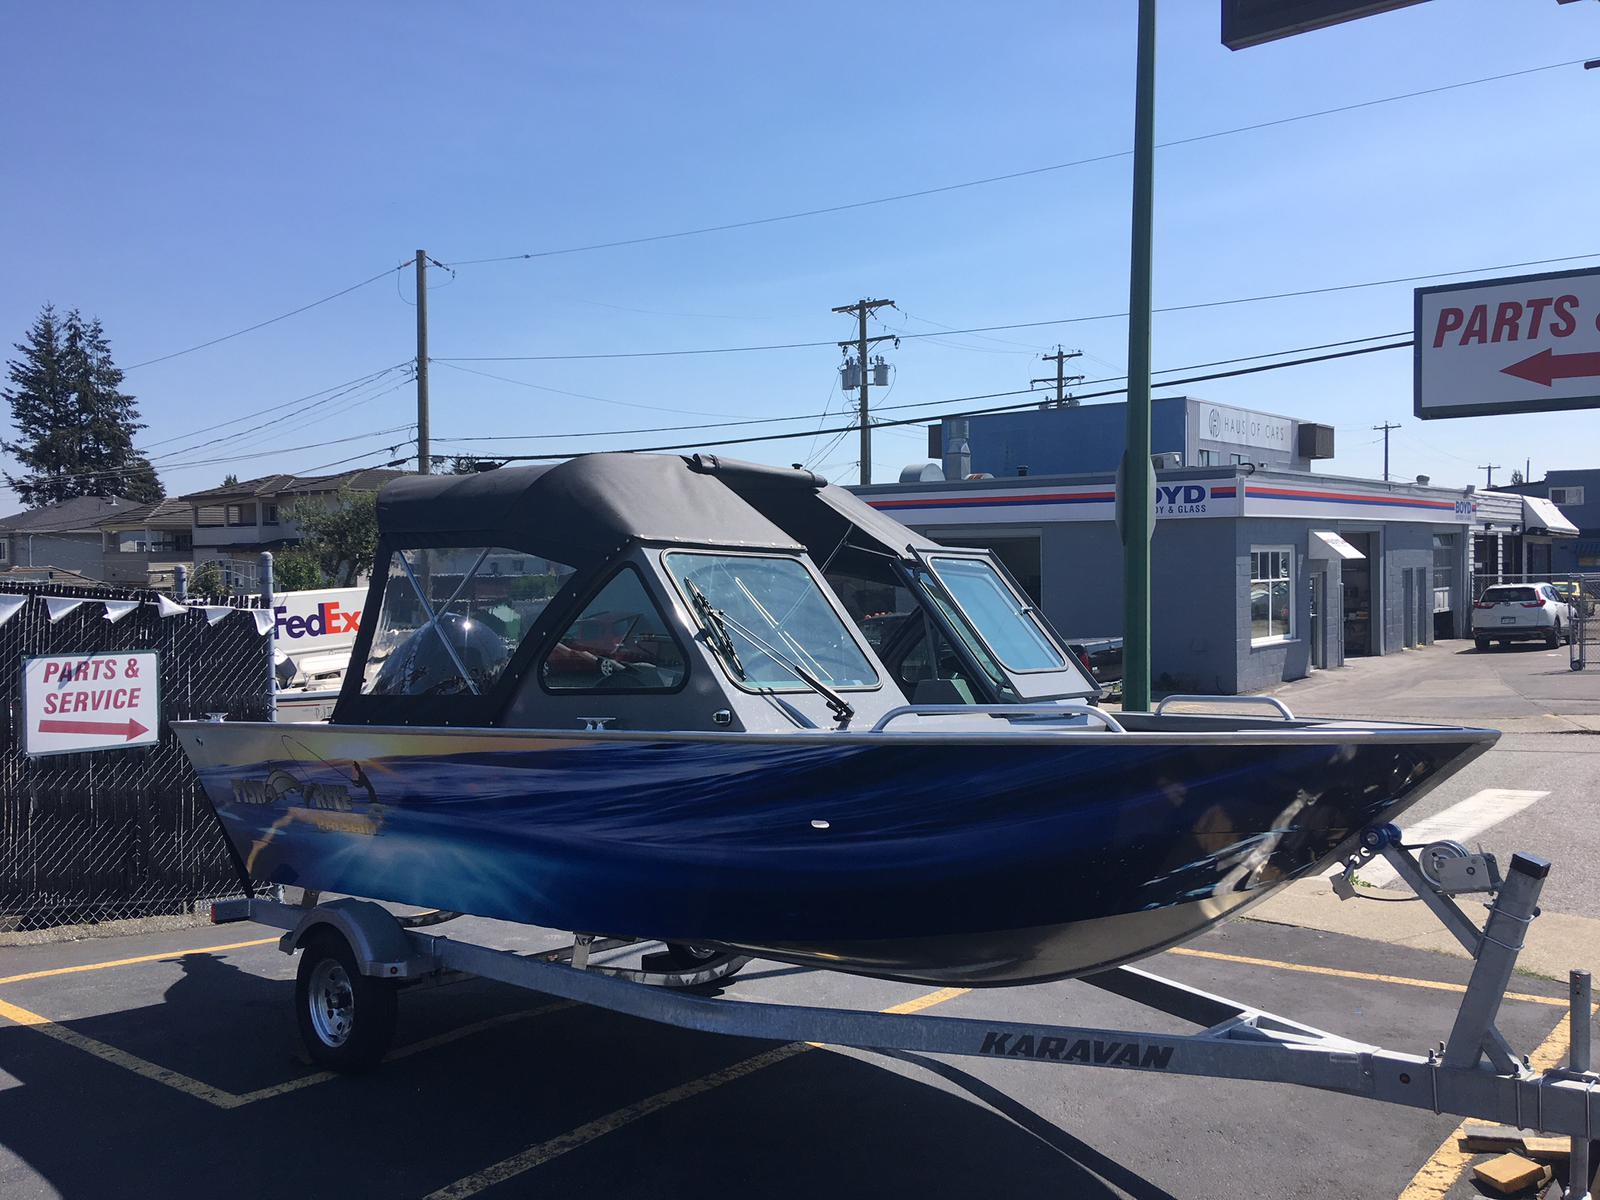 2019 Fish Rite Aluminum boat for sale, model of the boat is 18 Stalker & Image # 1 of 3